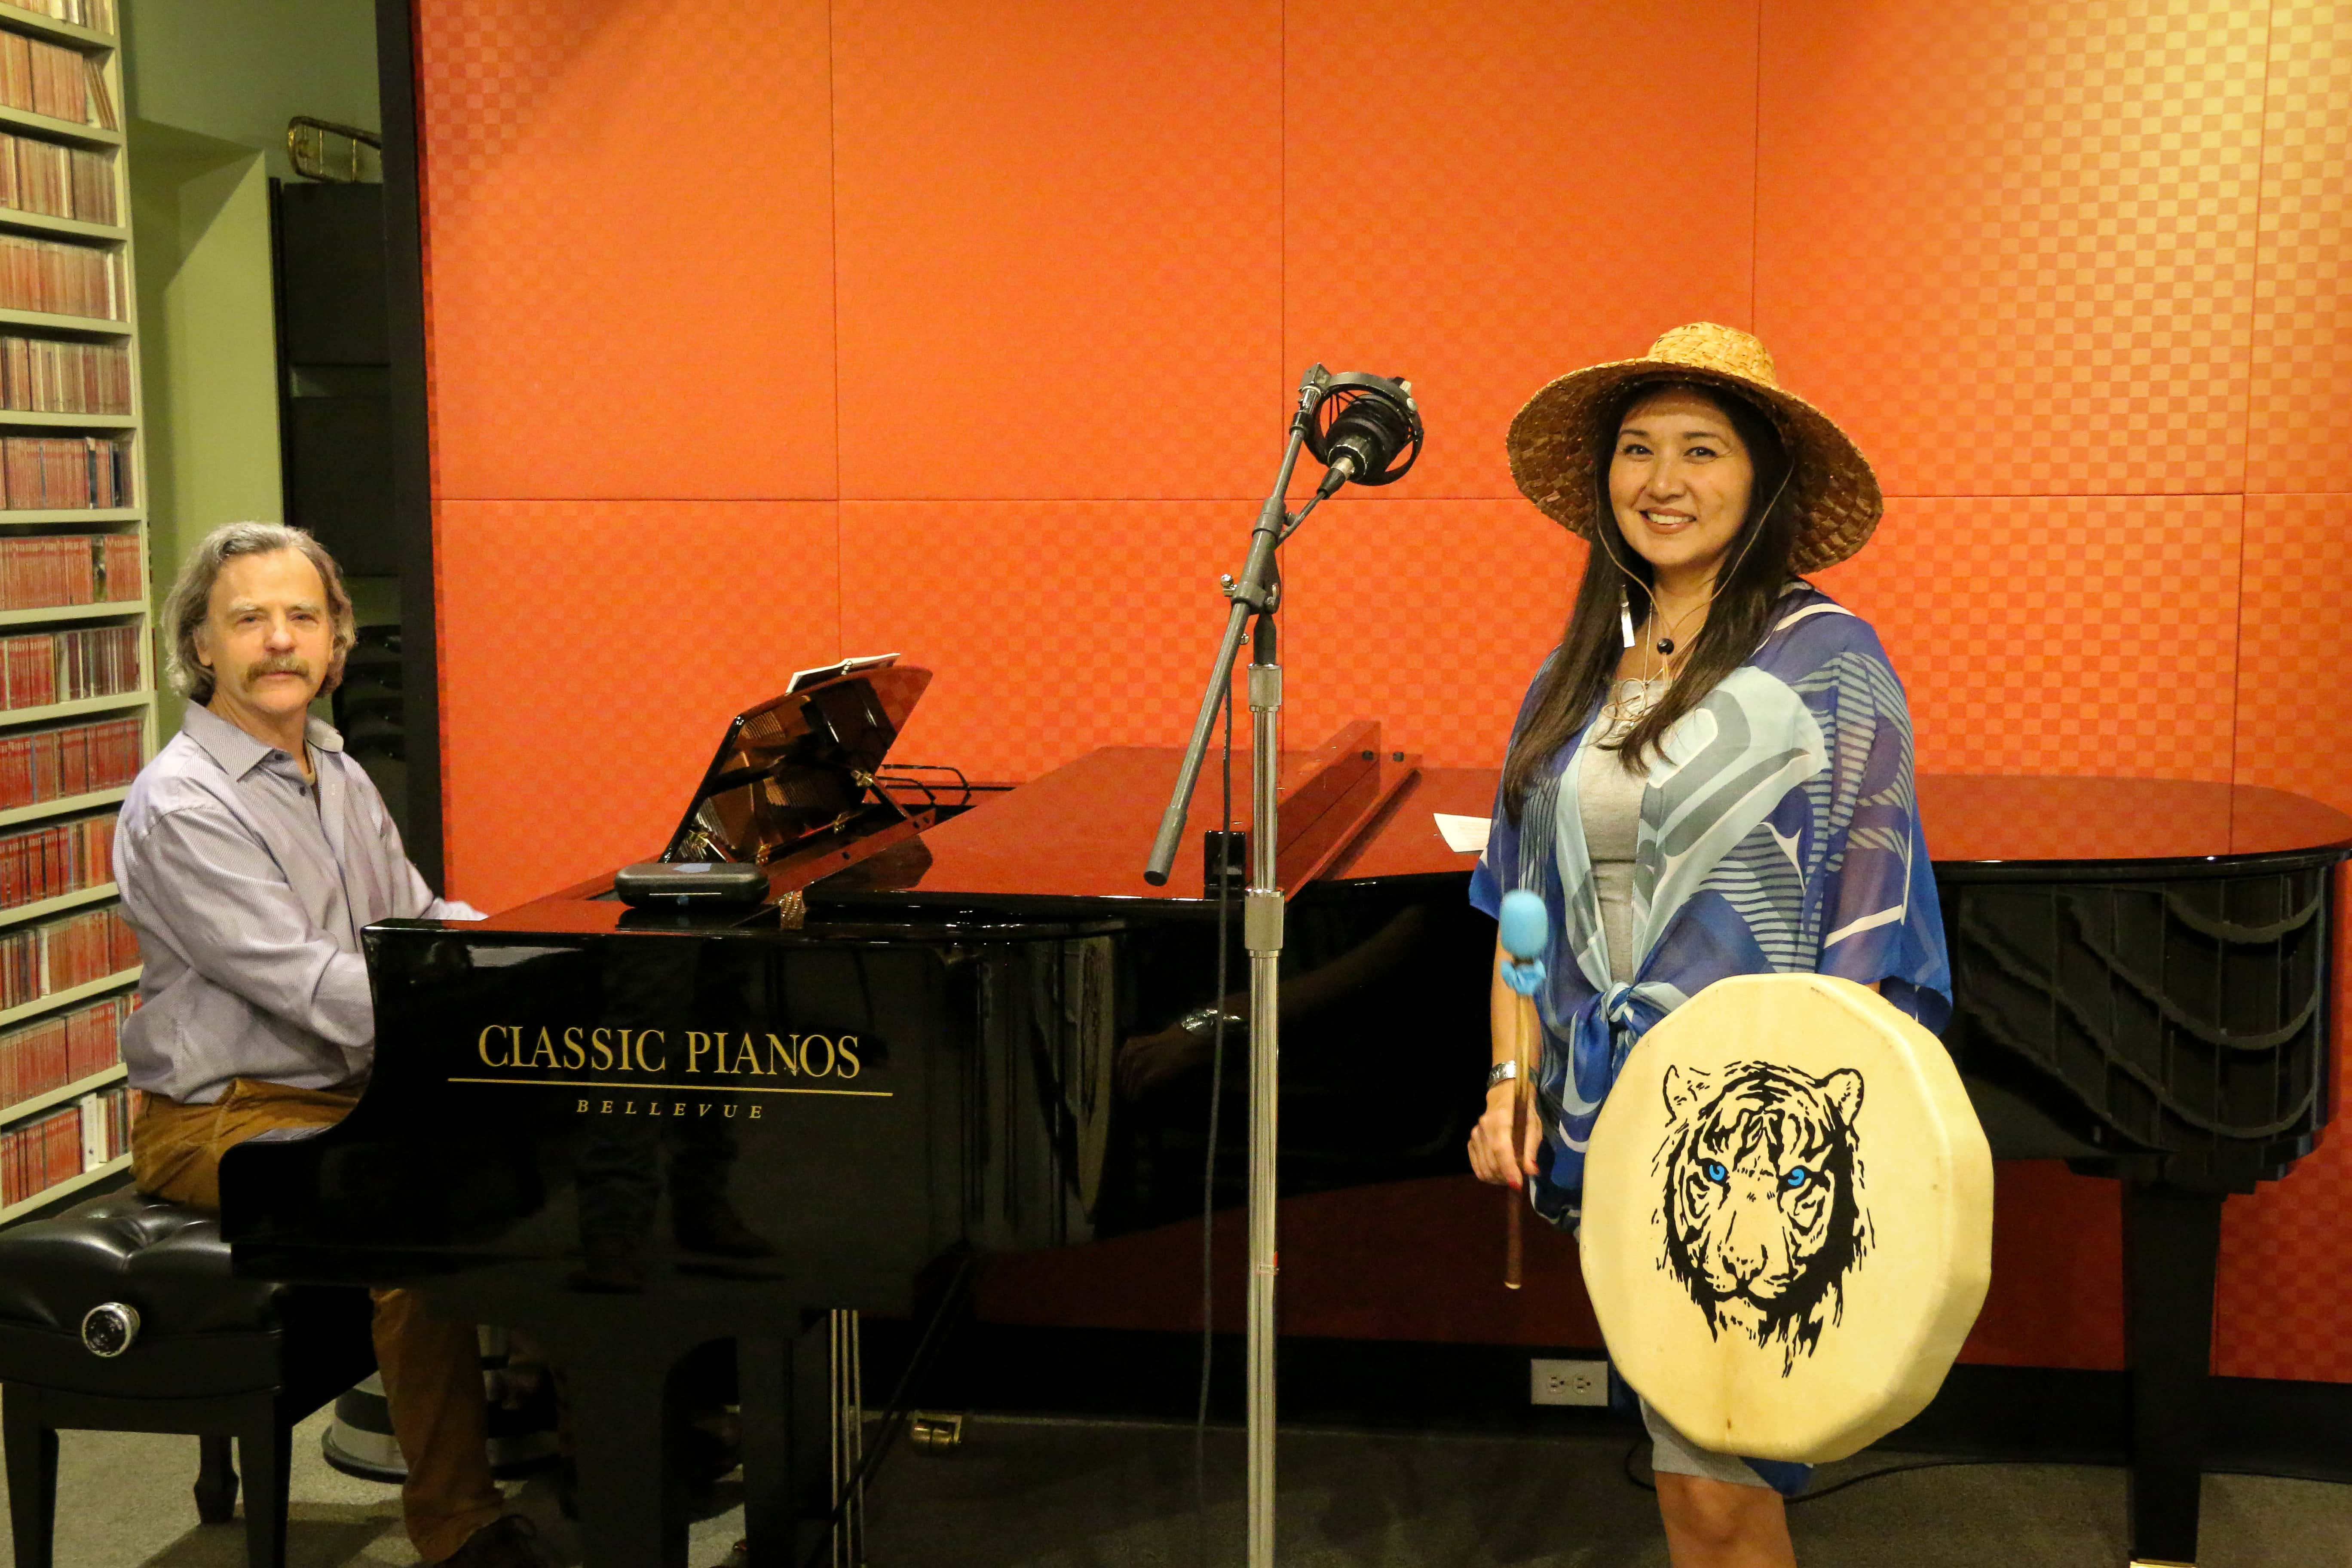 Woman in Alaska Native attire stands near a microphone, holding a drum, with a man seated next to her at a grand piano